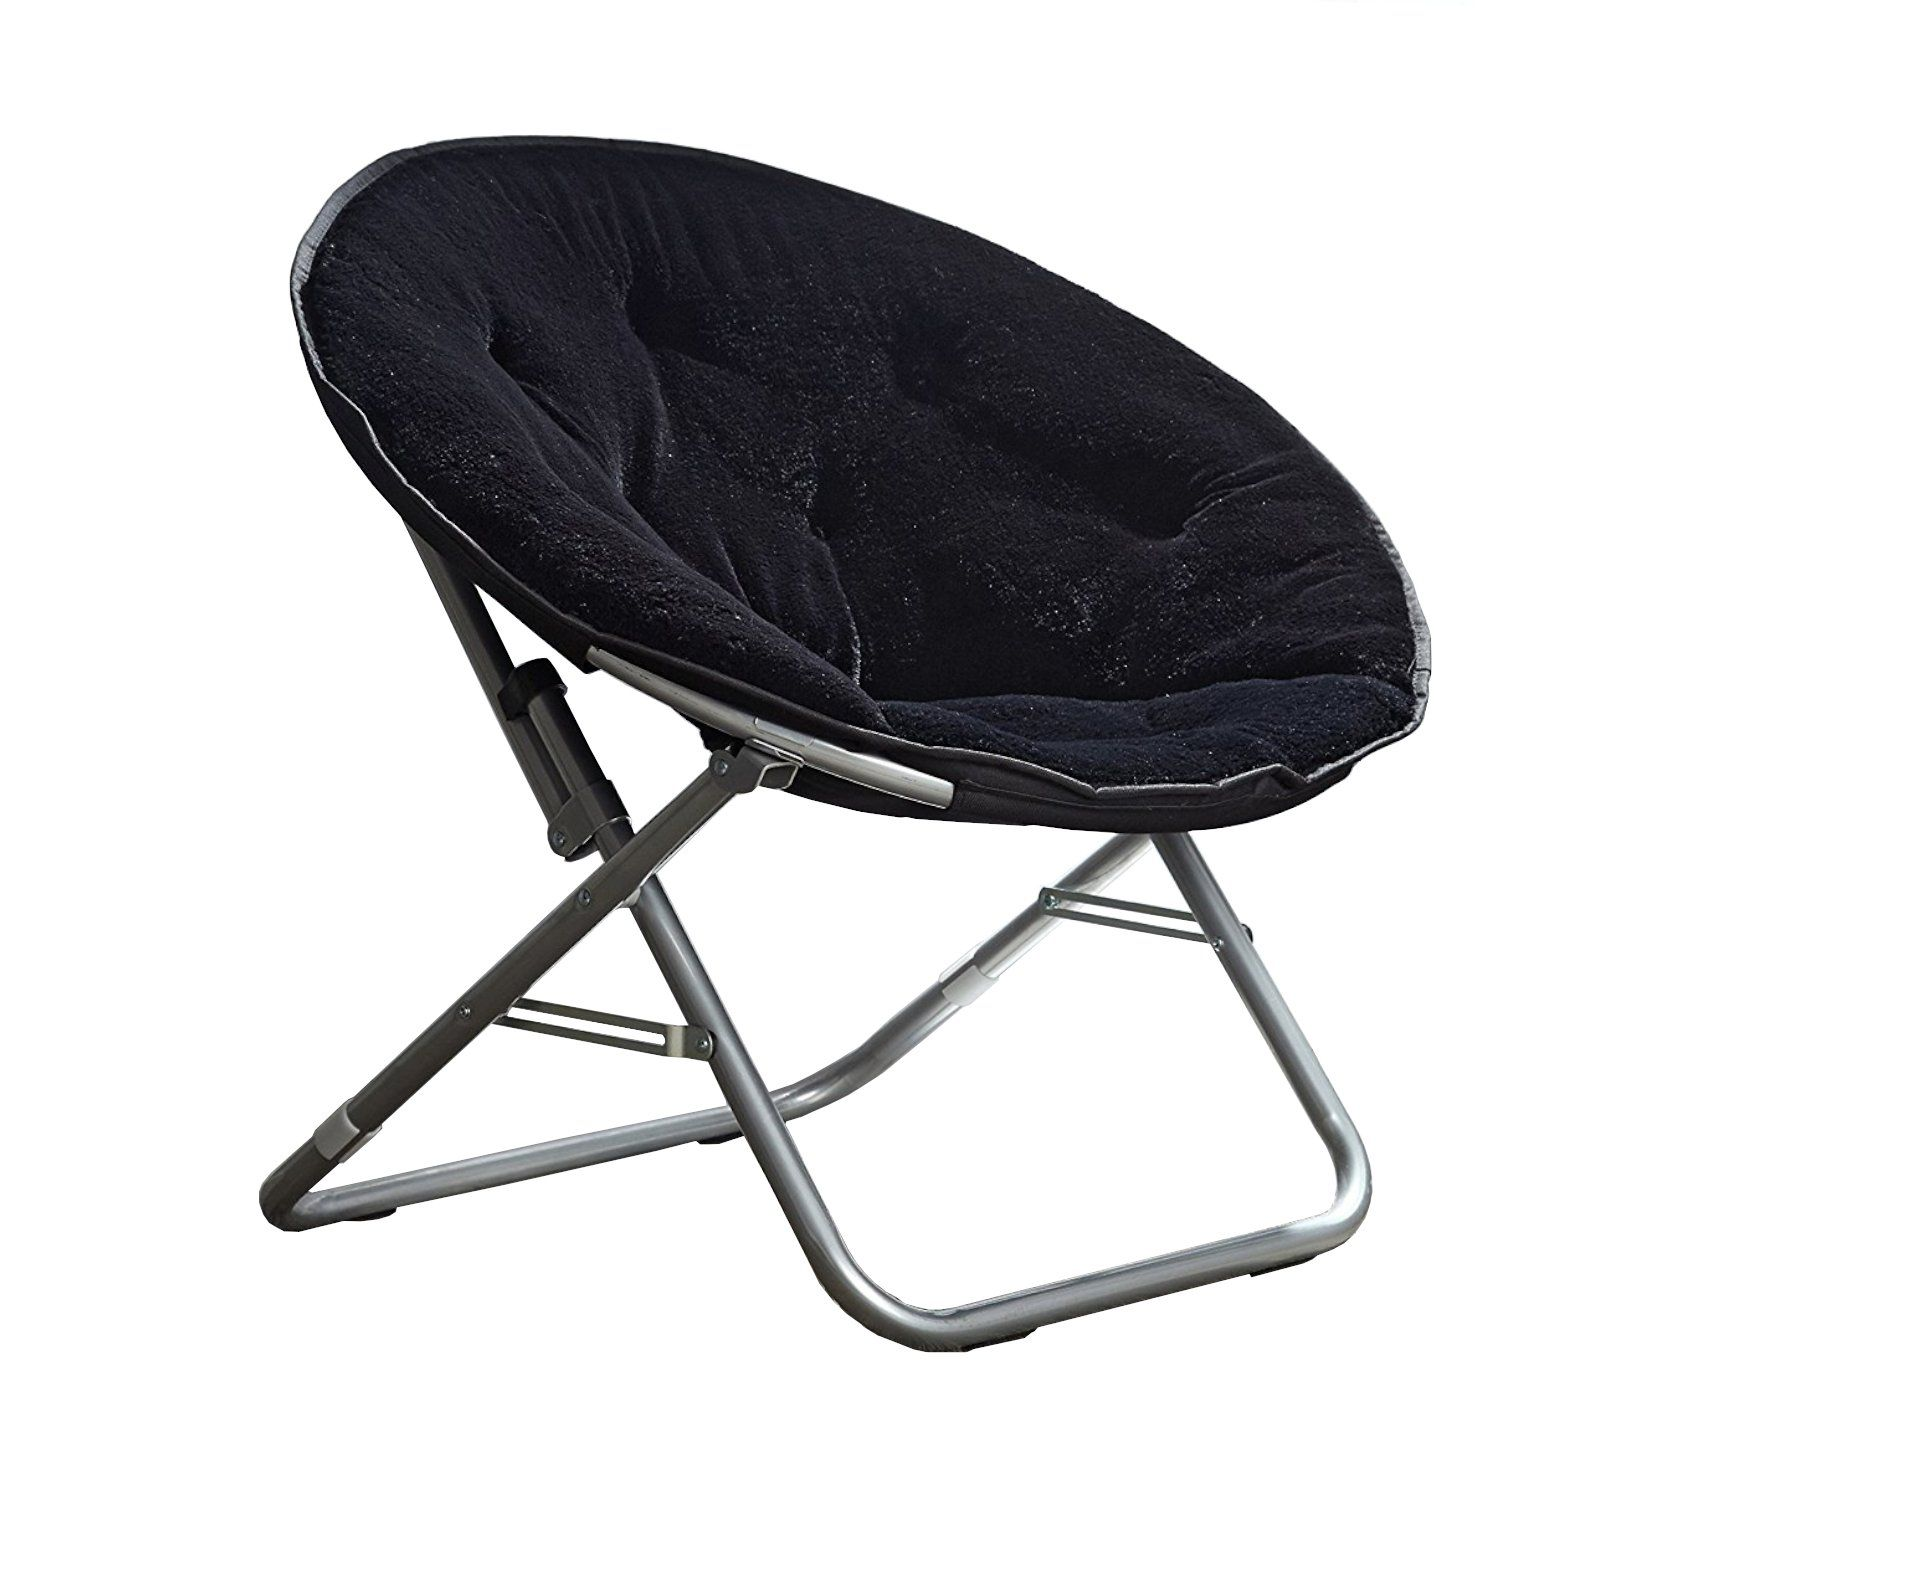 Folding Lounge Chair Fabric Metal Saucer Chair Indoor